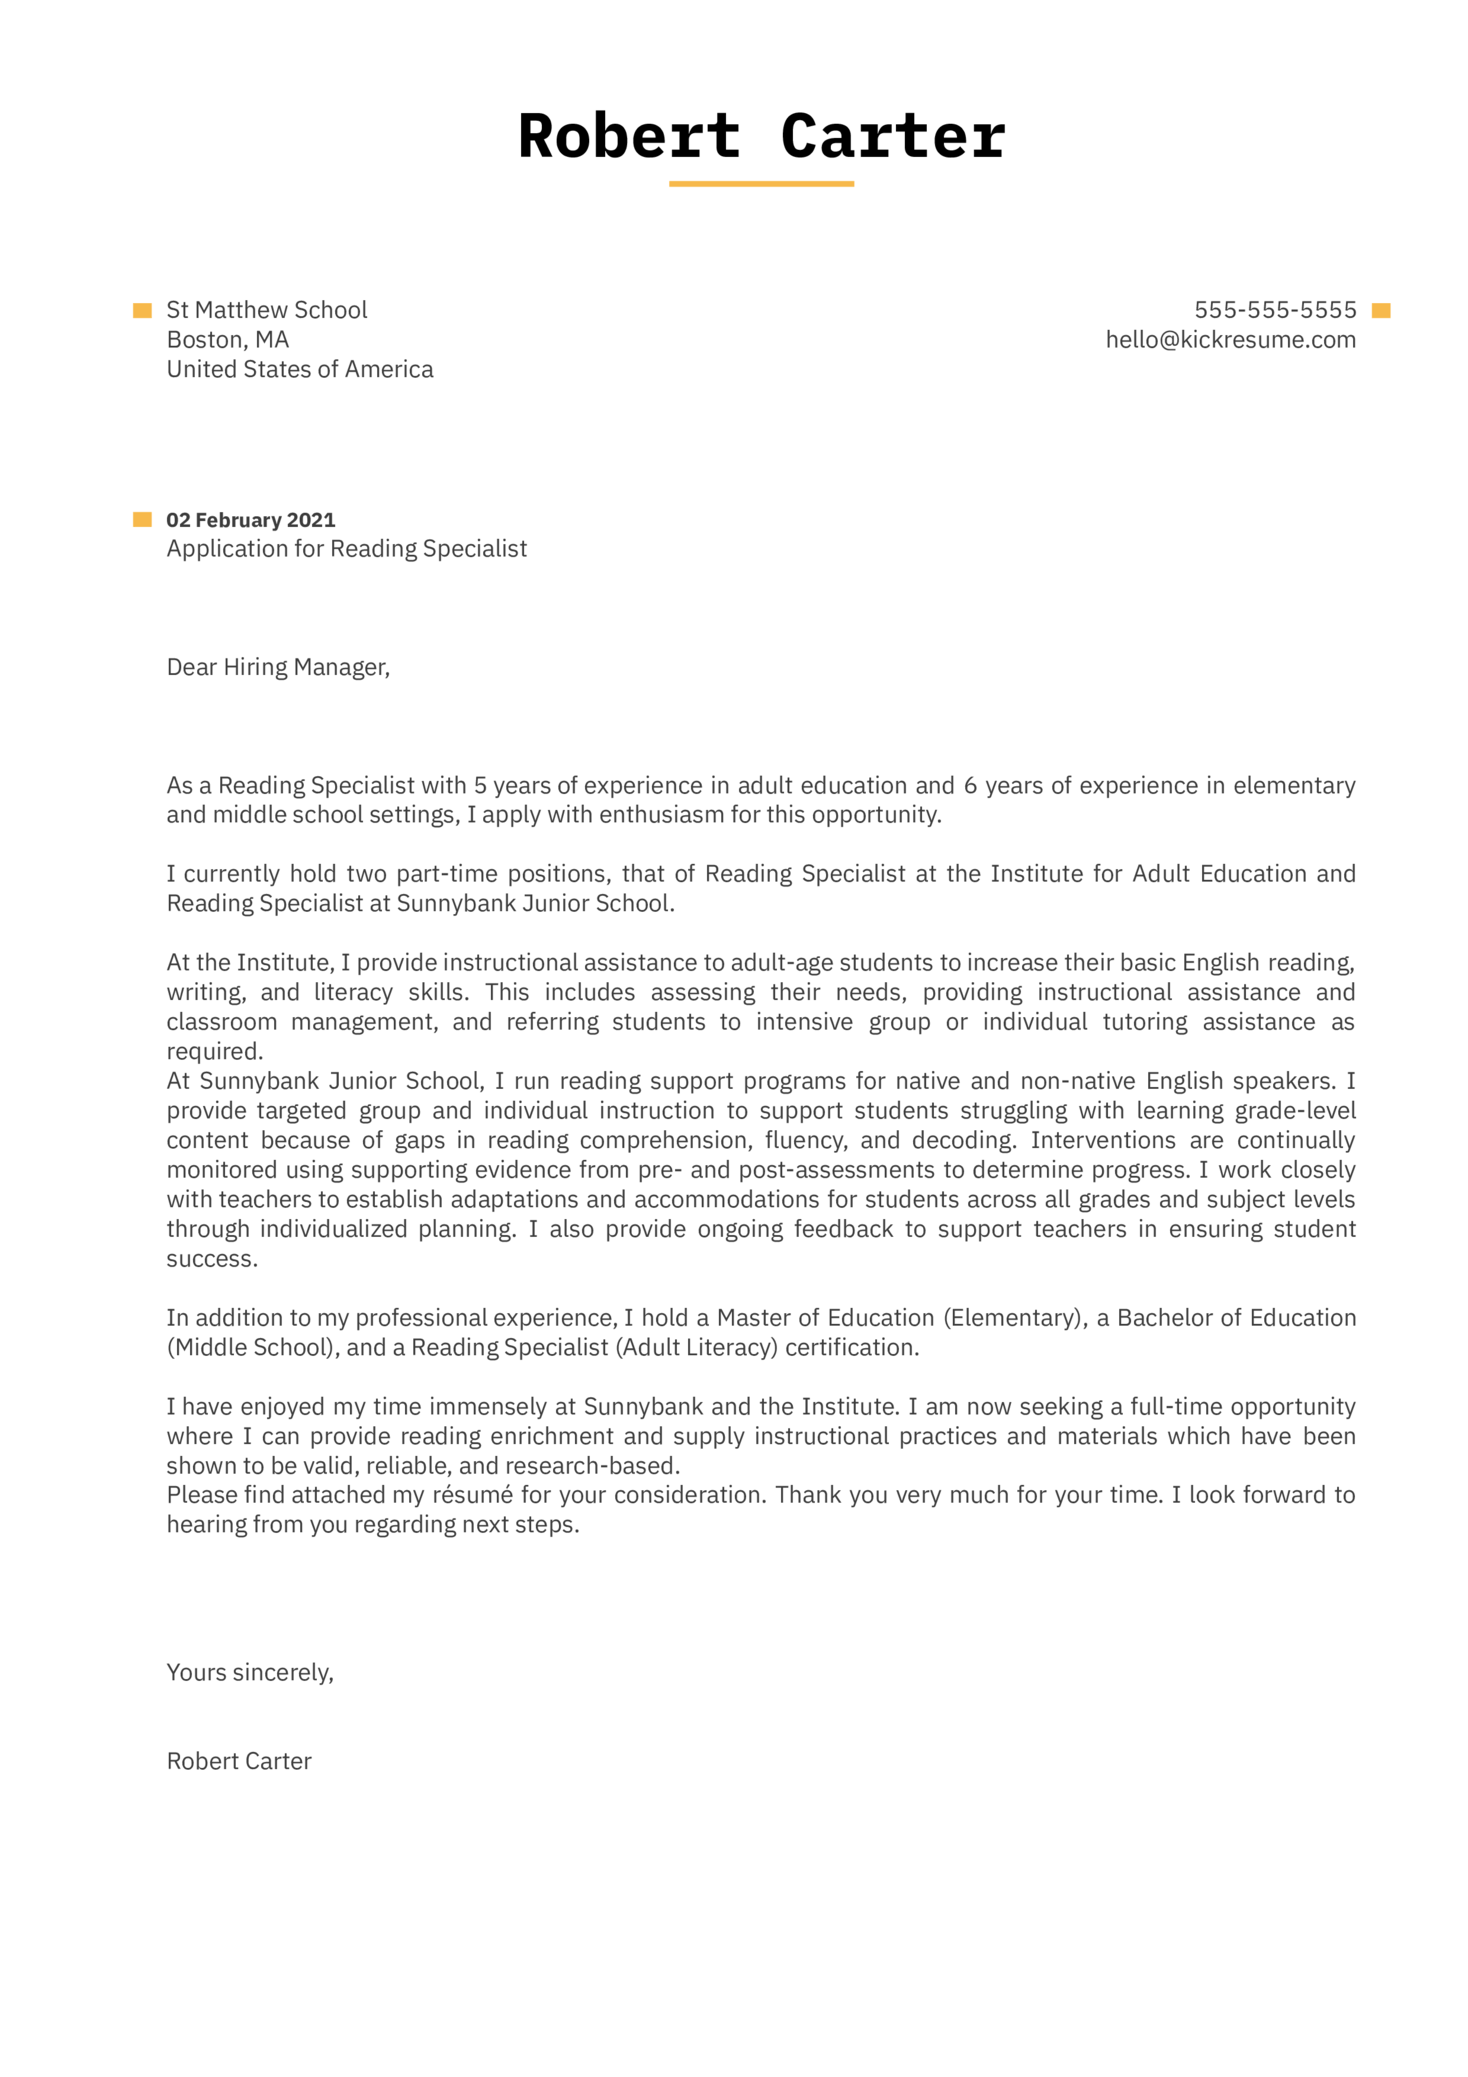 Reading Specialist Cover Letter Template